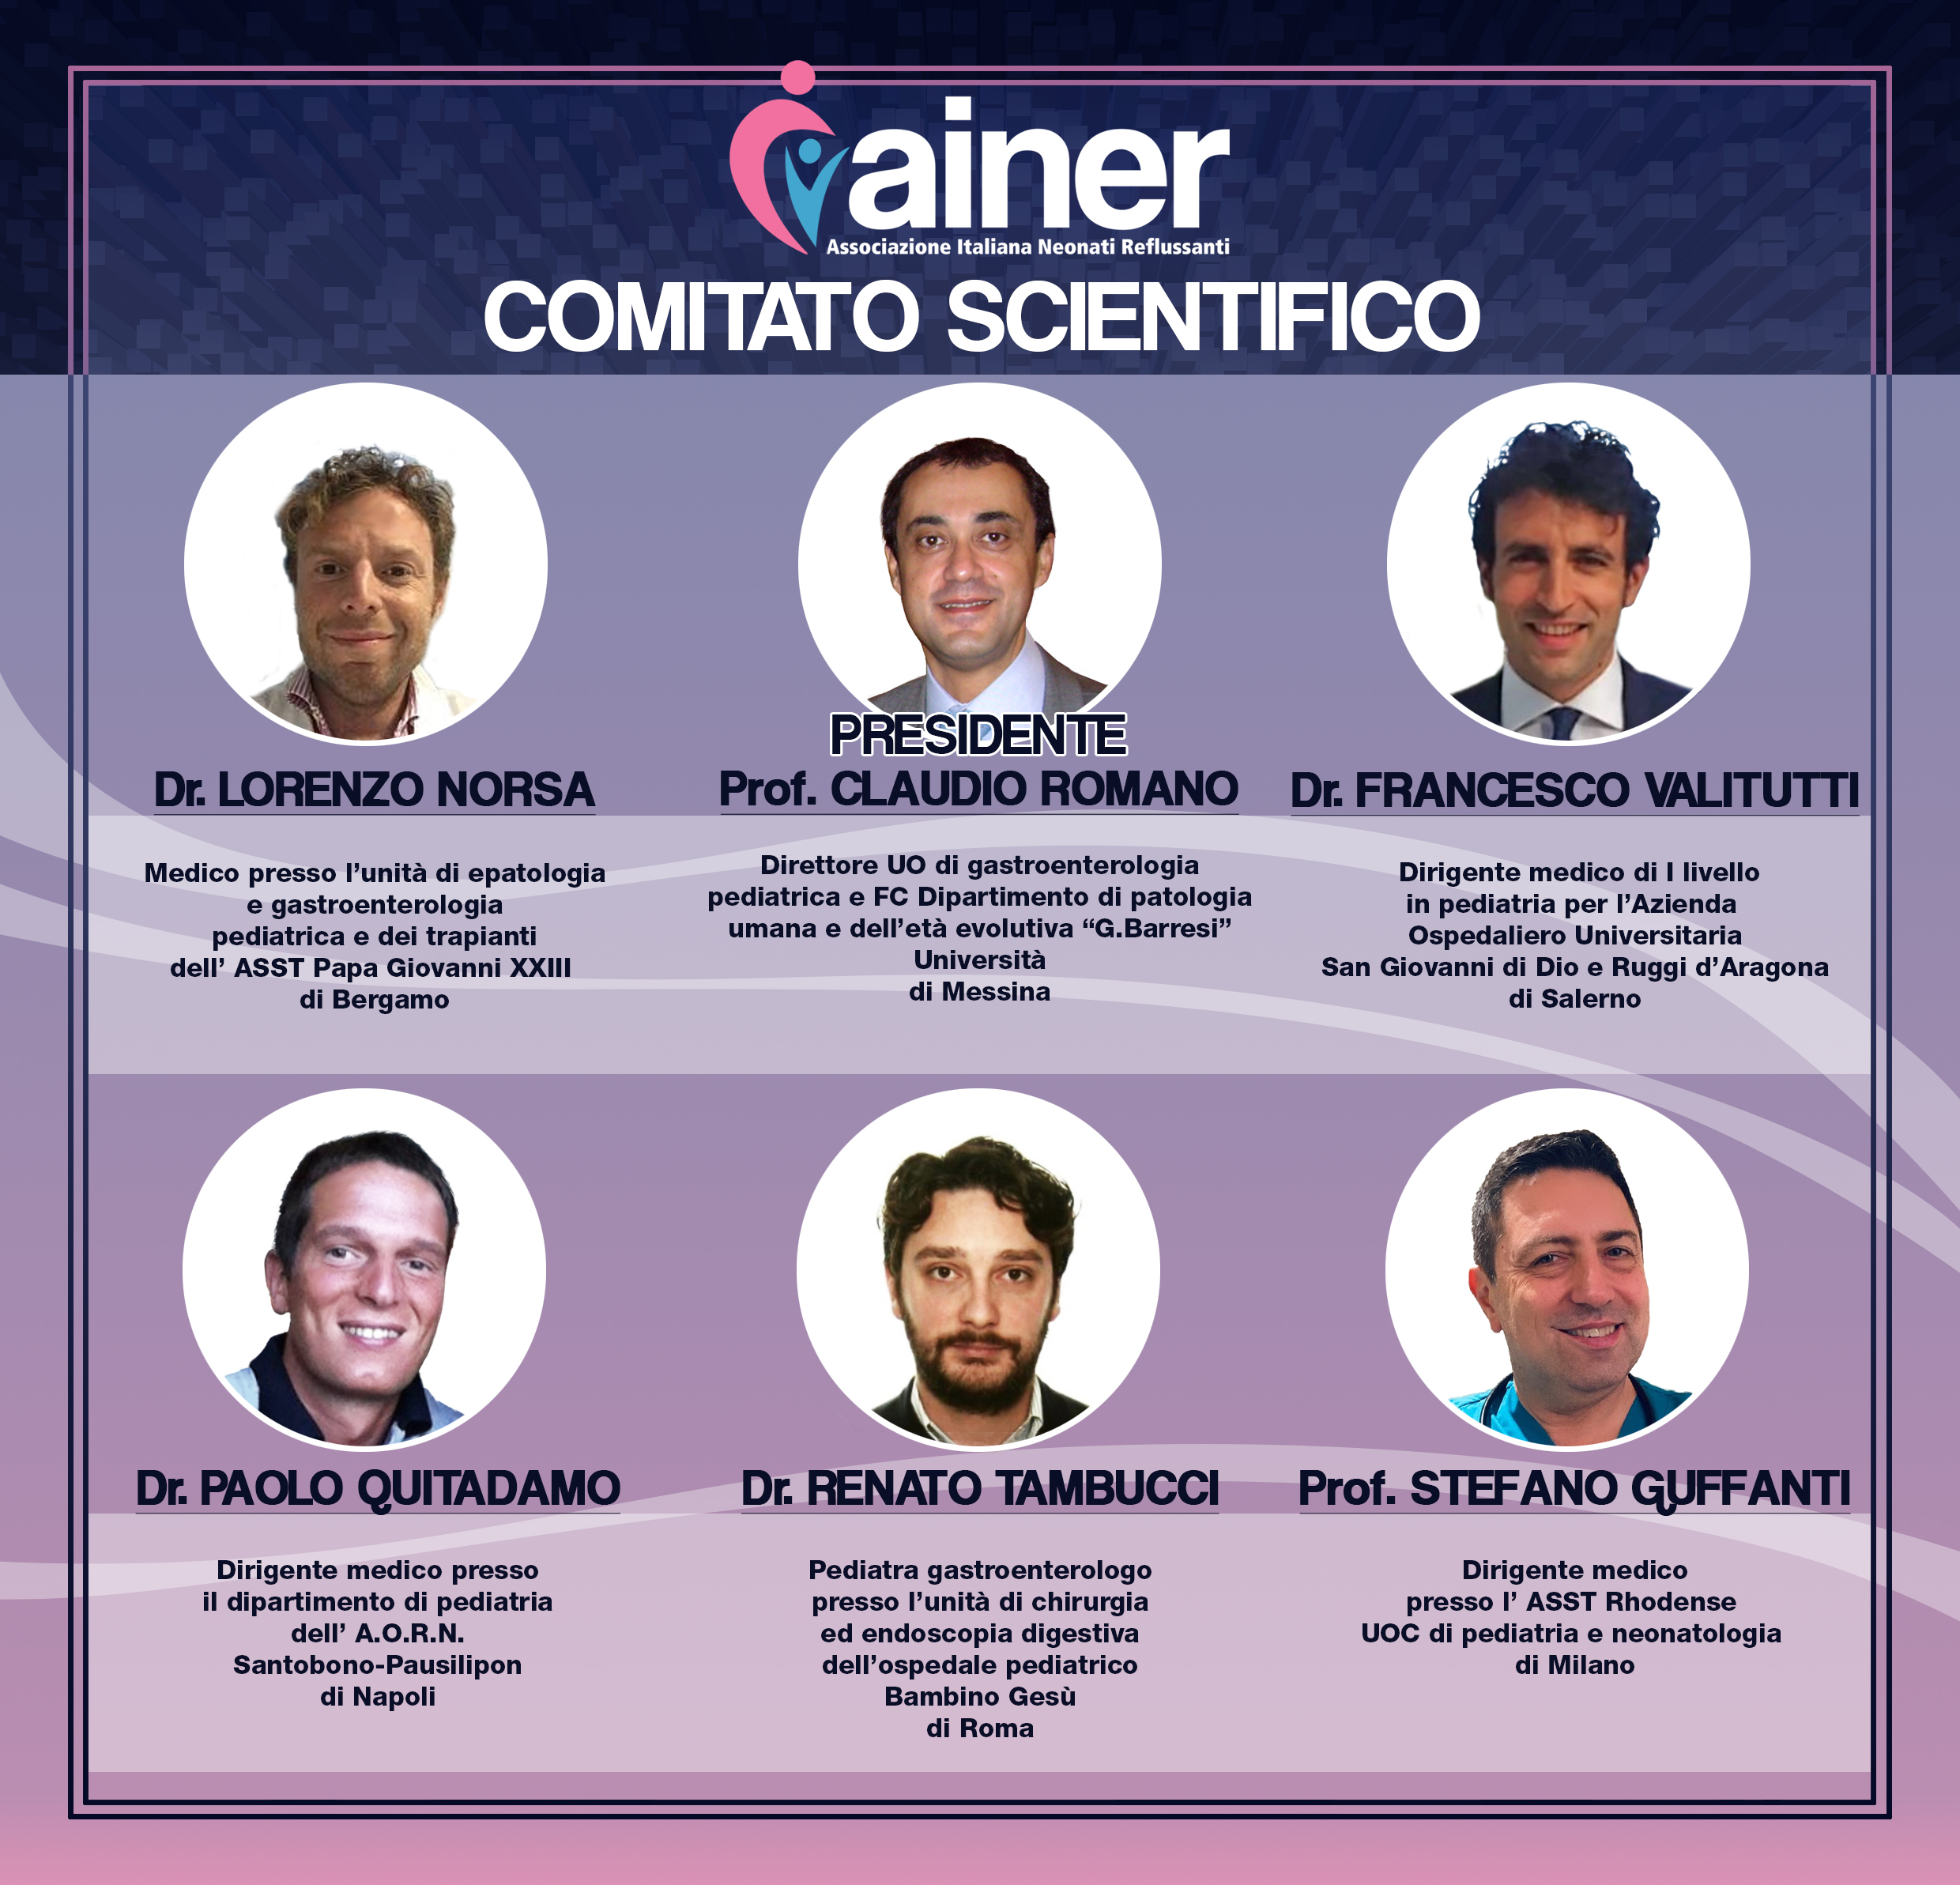 COMITATO SCIENTIFICO AINER